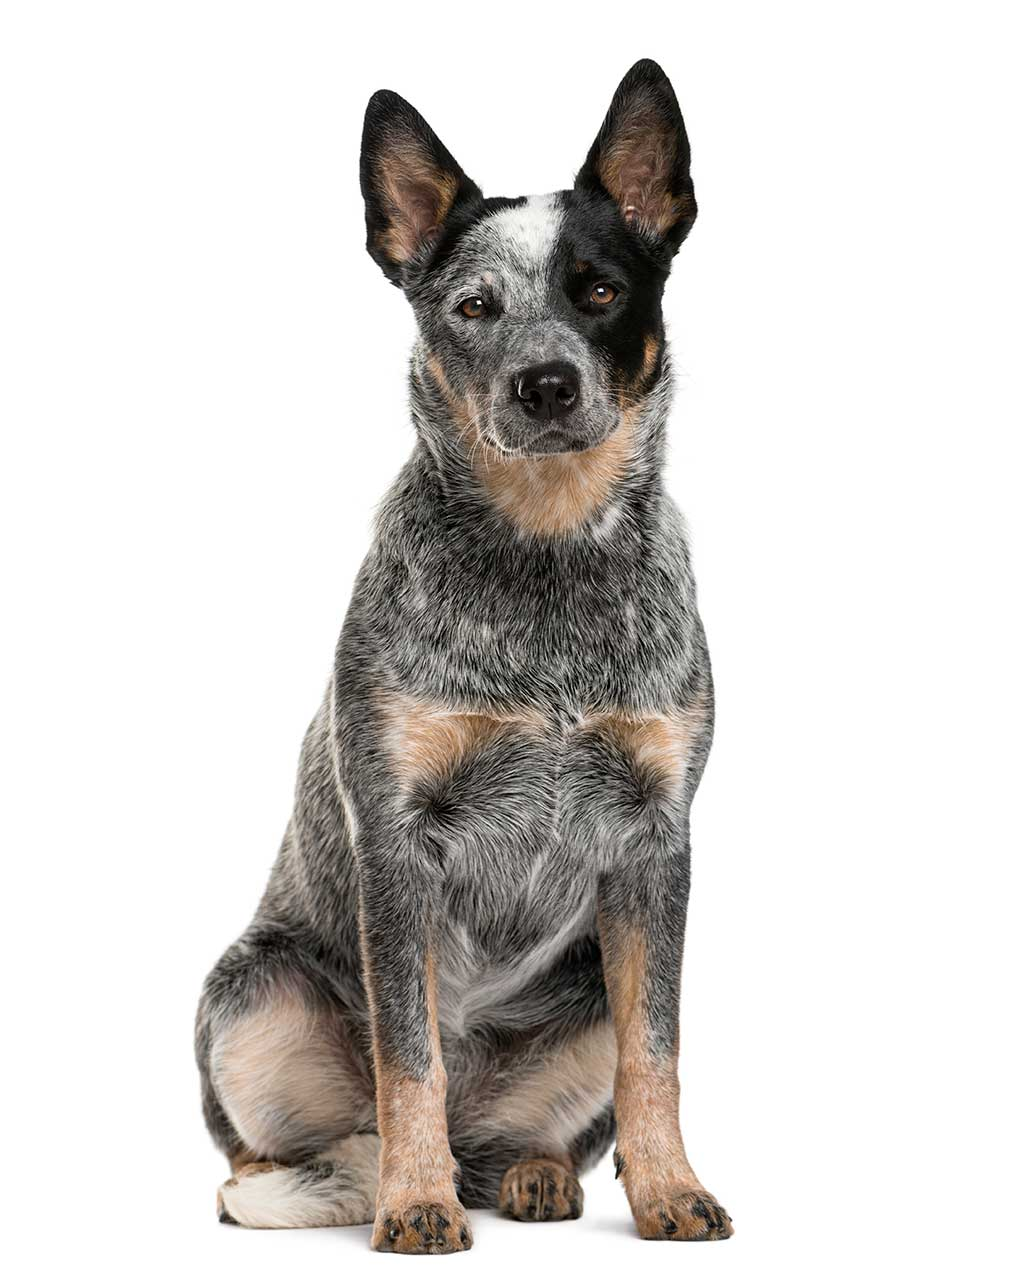 Australian Cattle Dog Australian Cattle Dog Breed Information Pictures And More